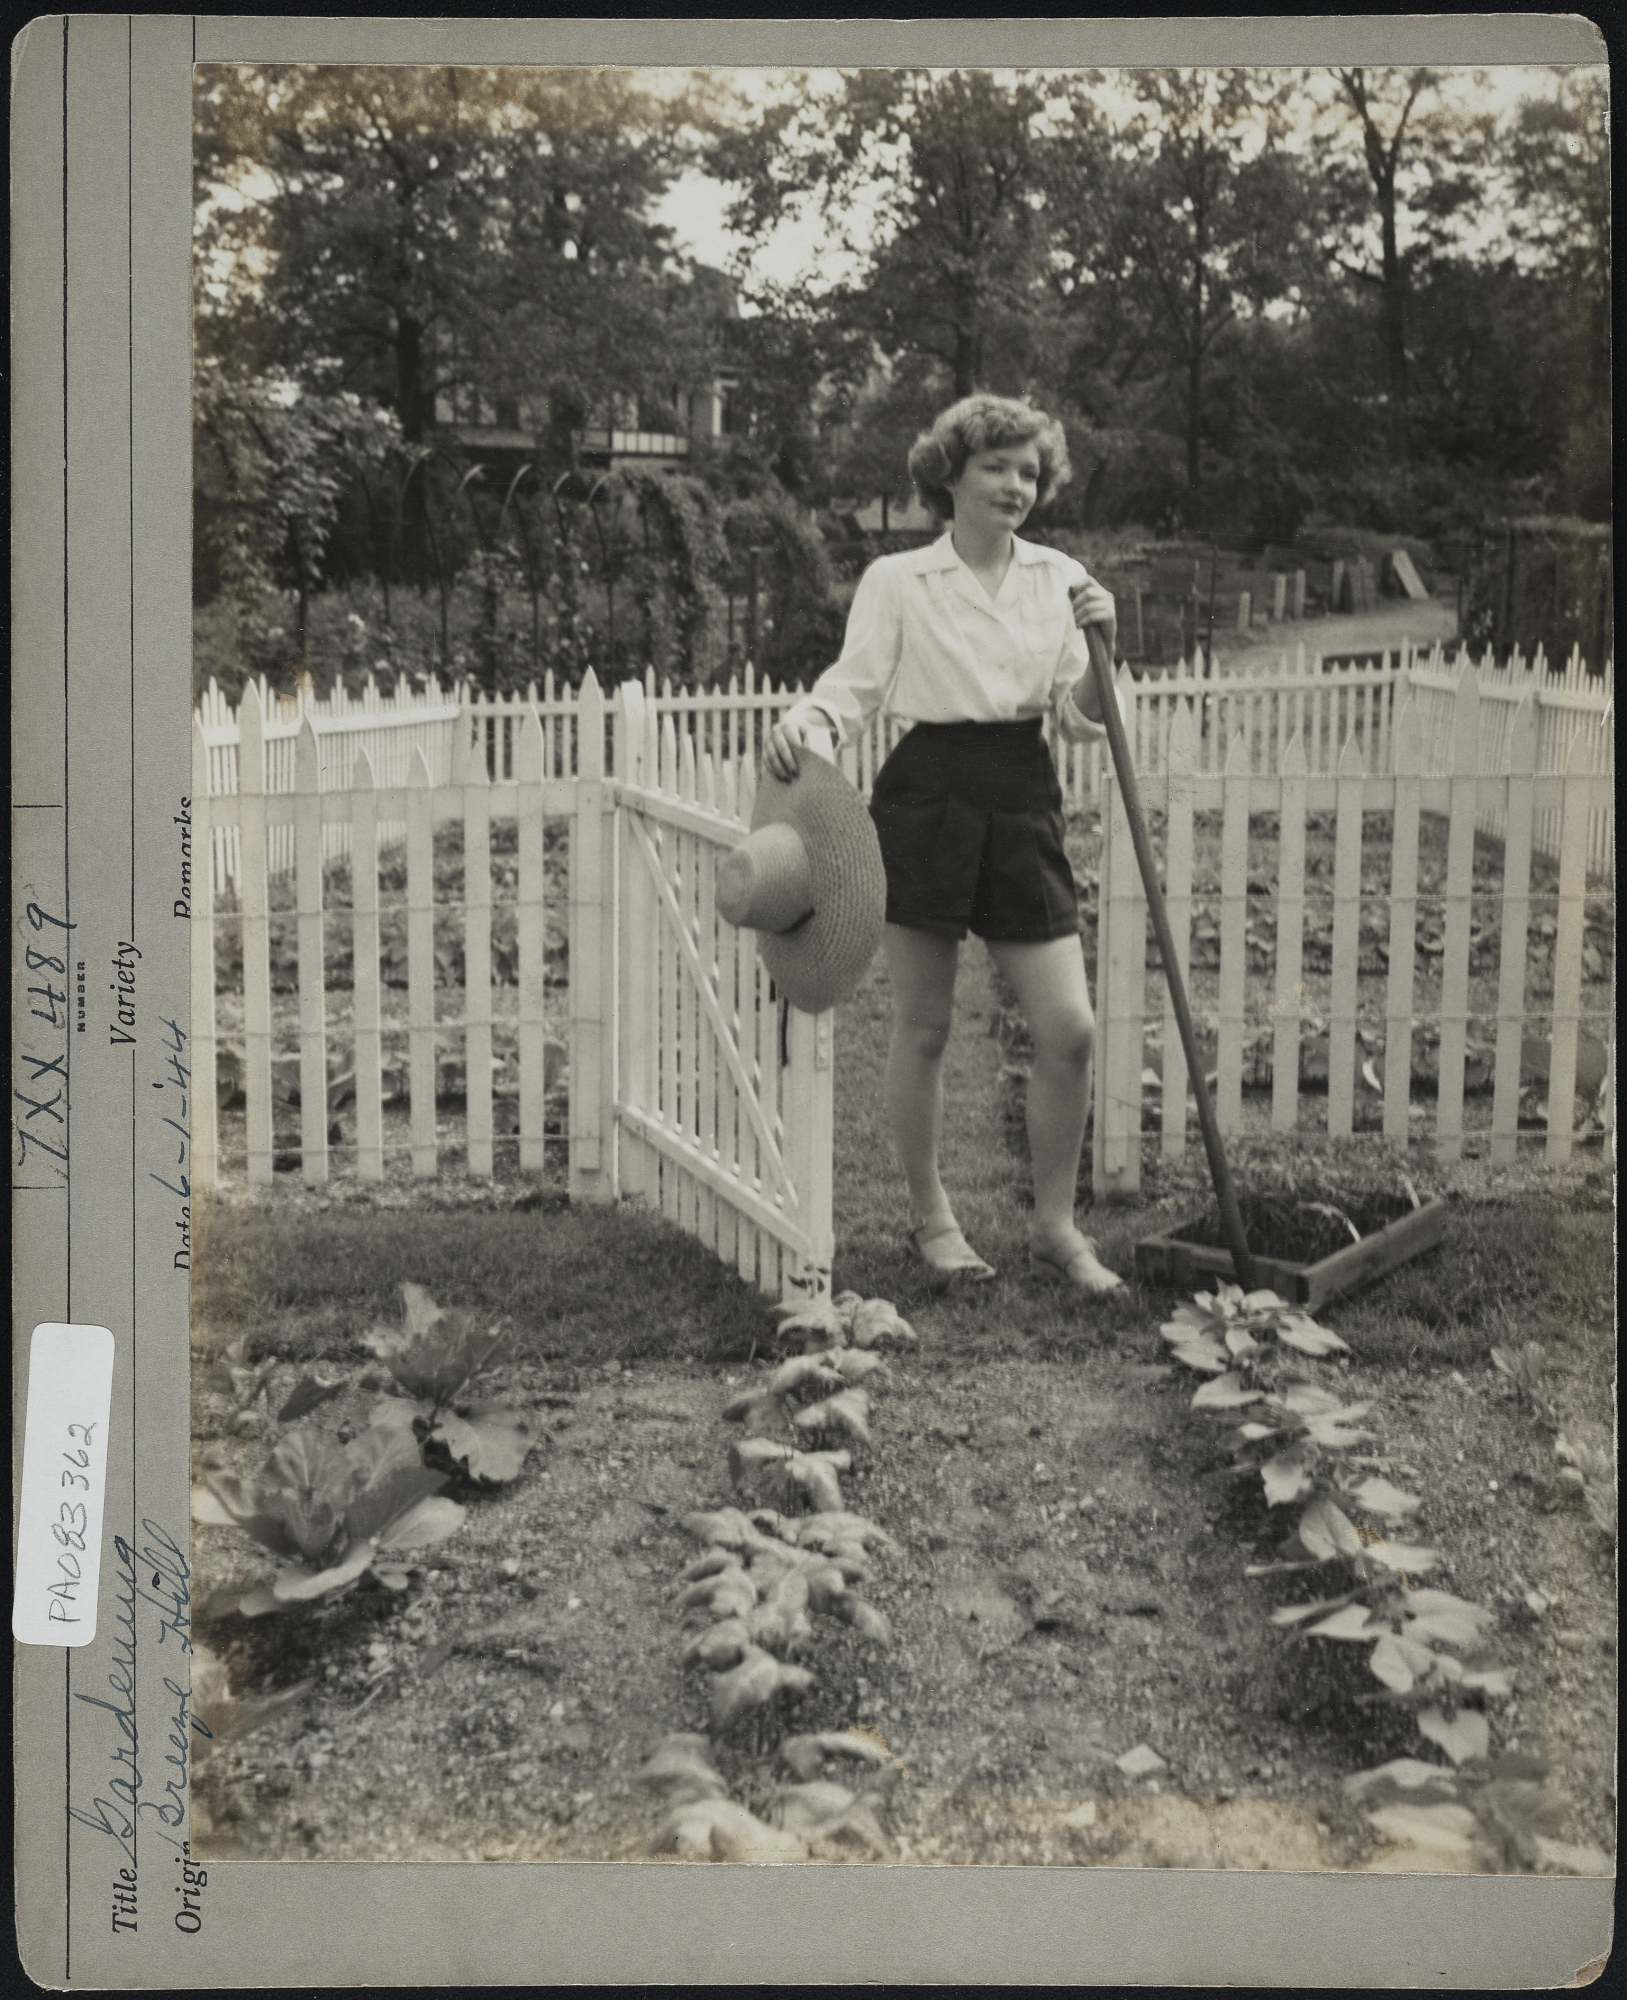 Black and white photo of a woman holding a garden rake while opening gate in white picket fence surrounding a vegetable garden